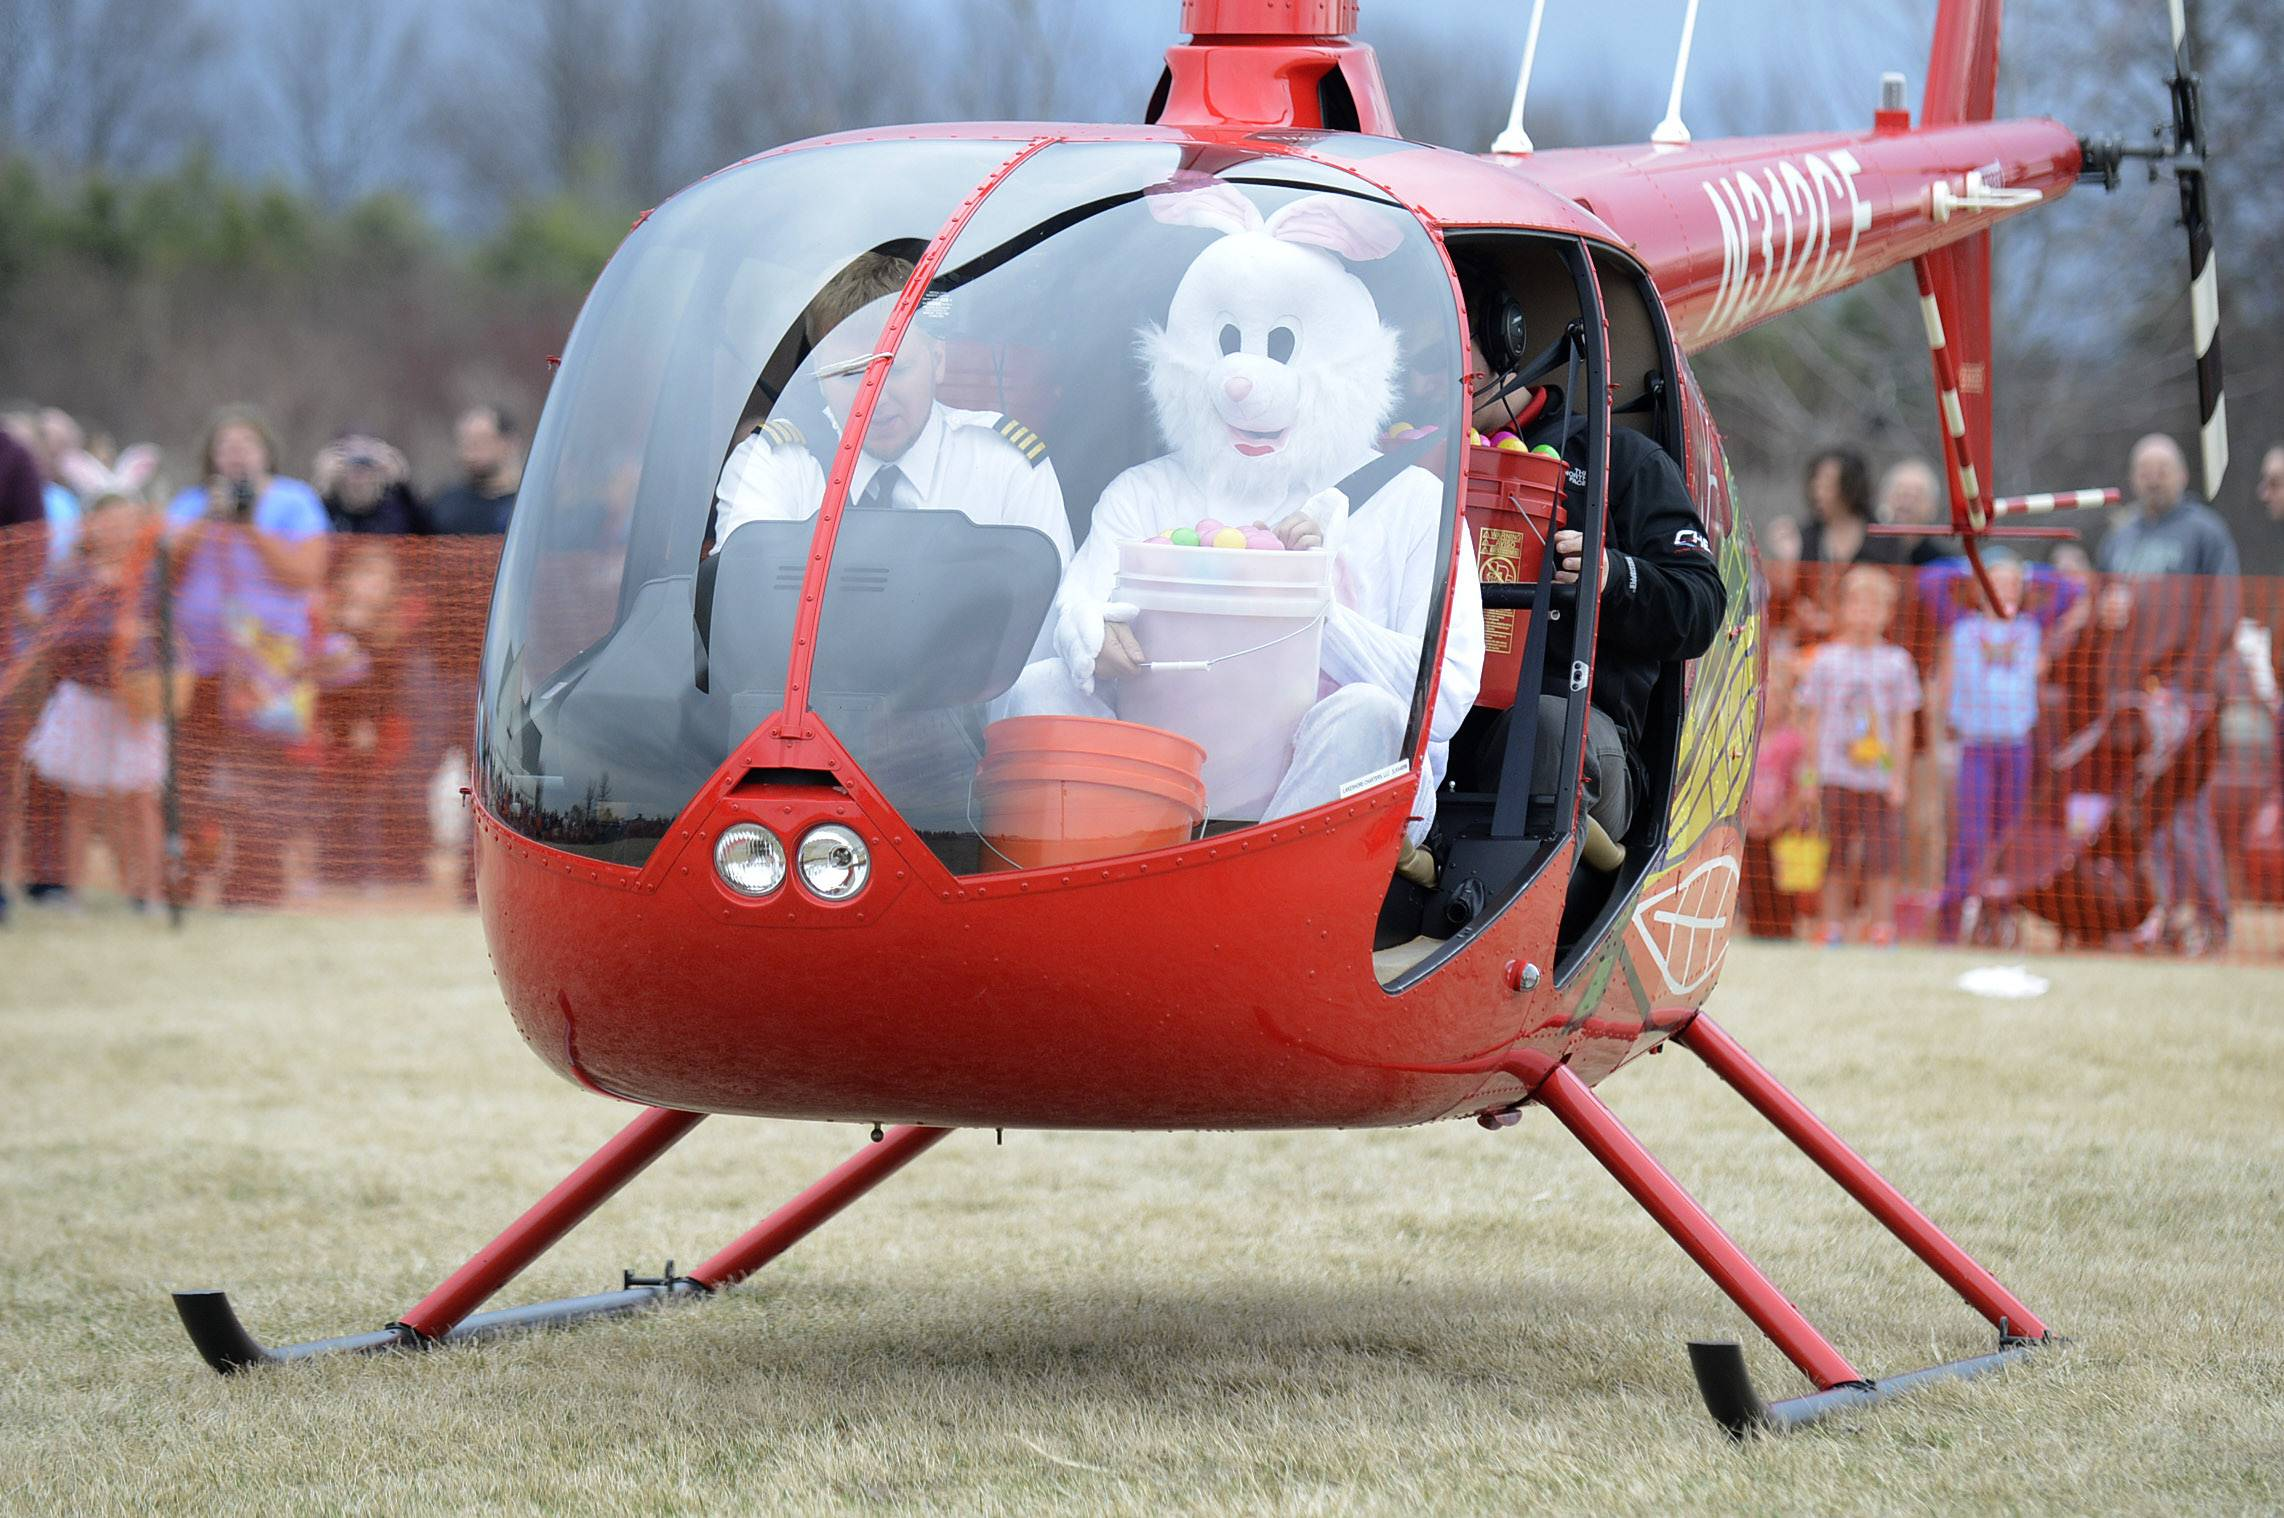 Easter Bunny Delivers Eggs To Geneva By Helicopter